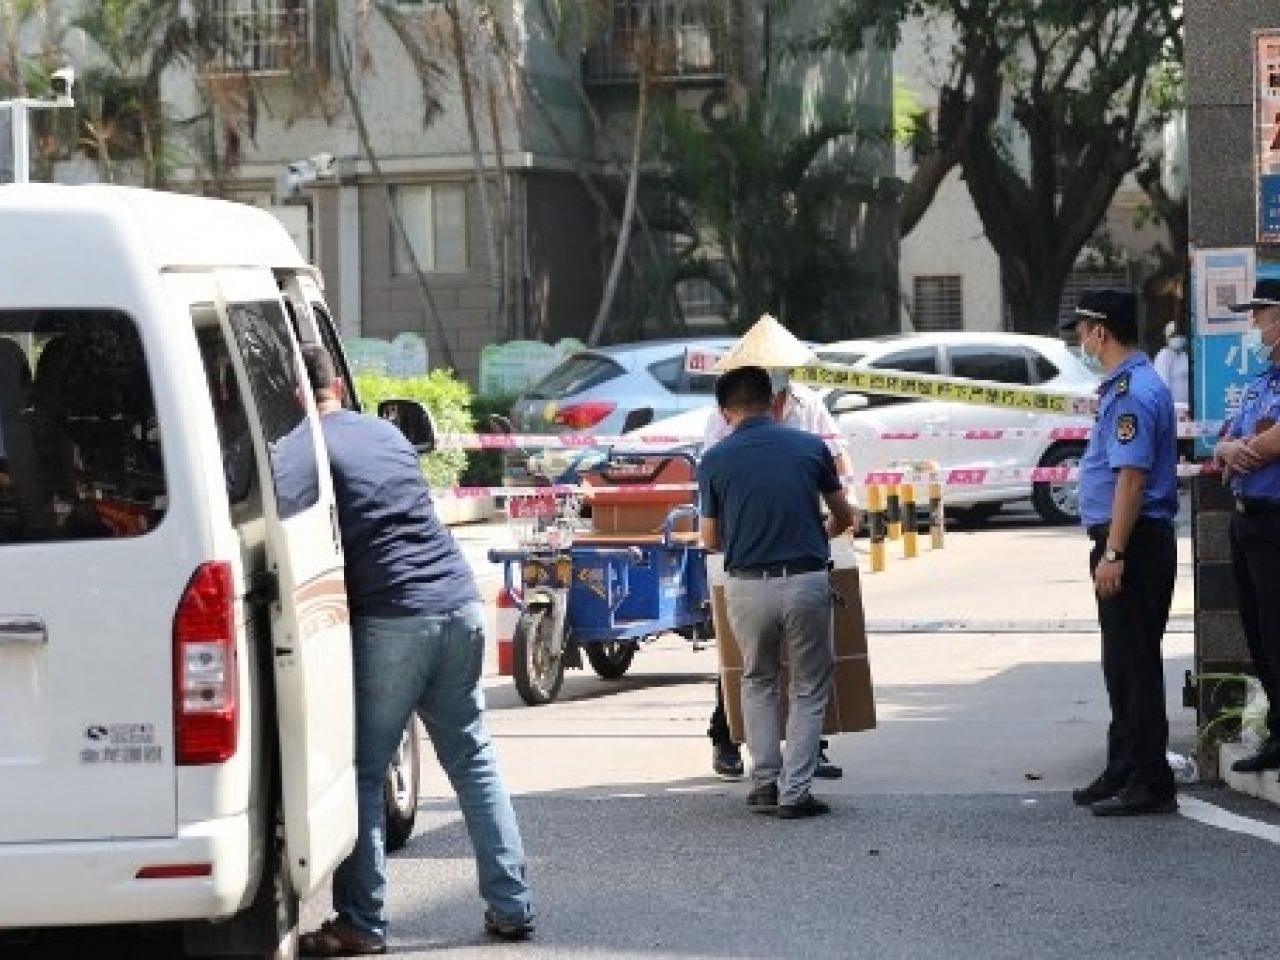 Residents transfer daily necessities at a residential area under tight restrictions due to cases of the Covid-19 virus in Xiamen. Photo: AFP